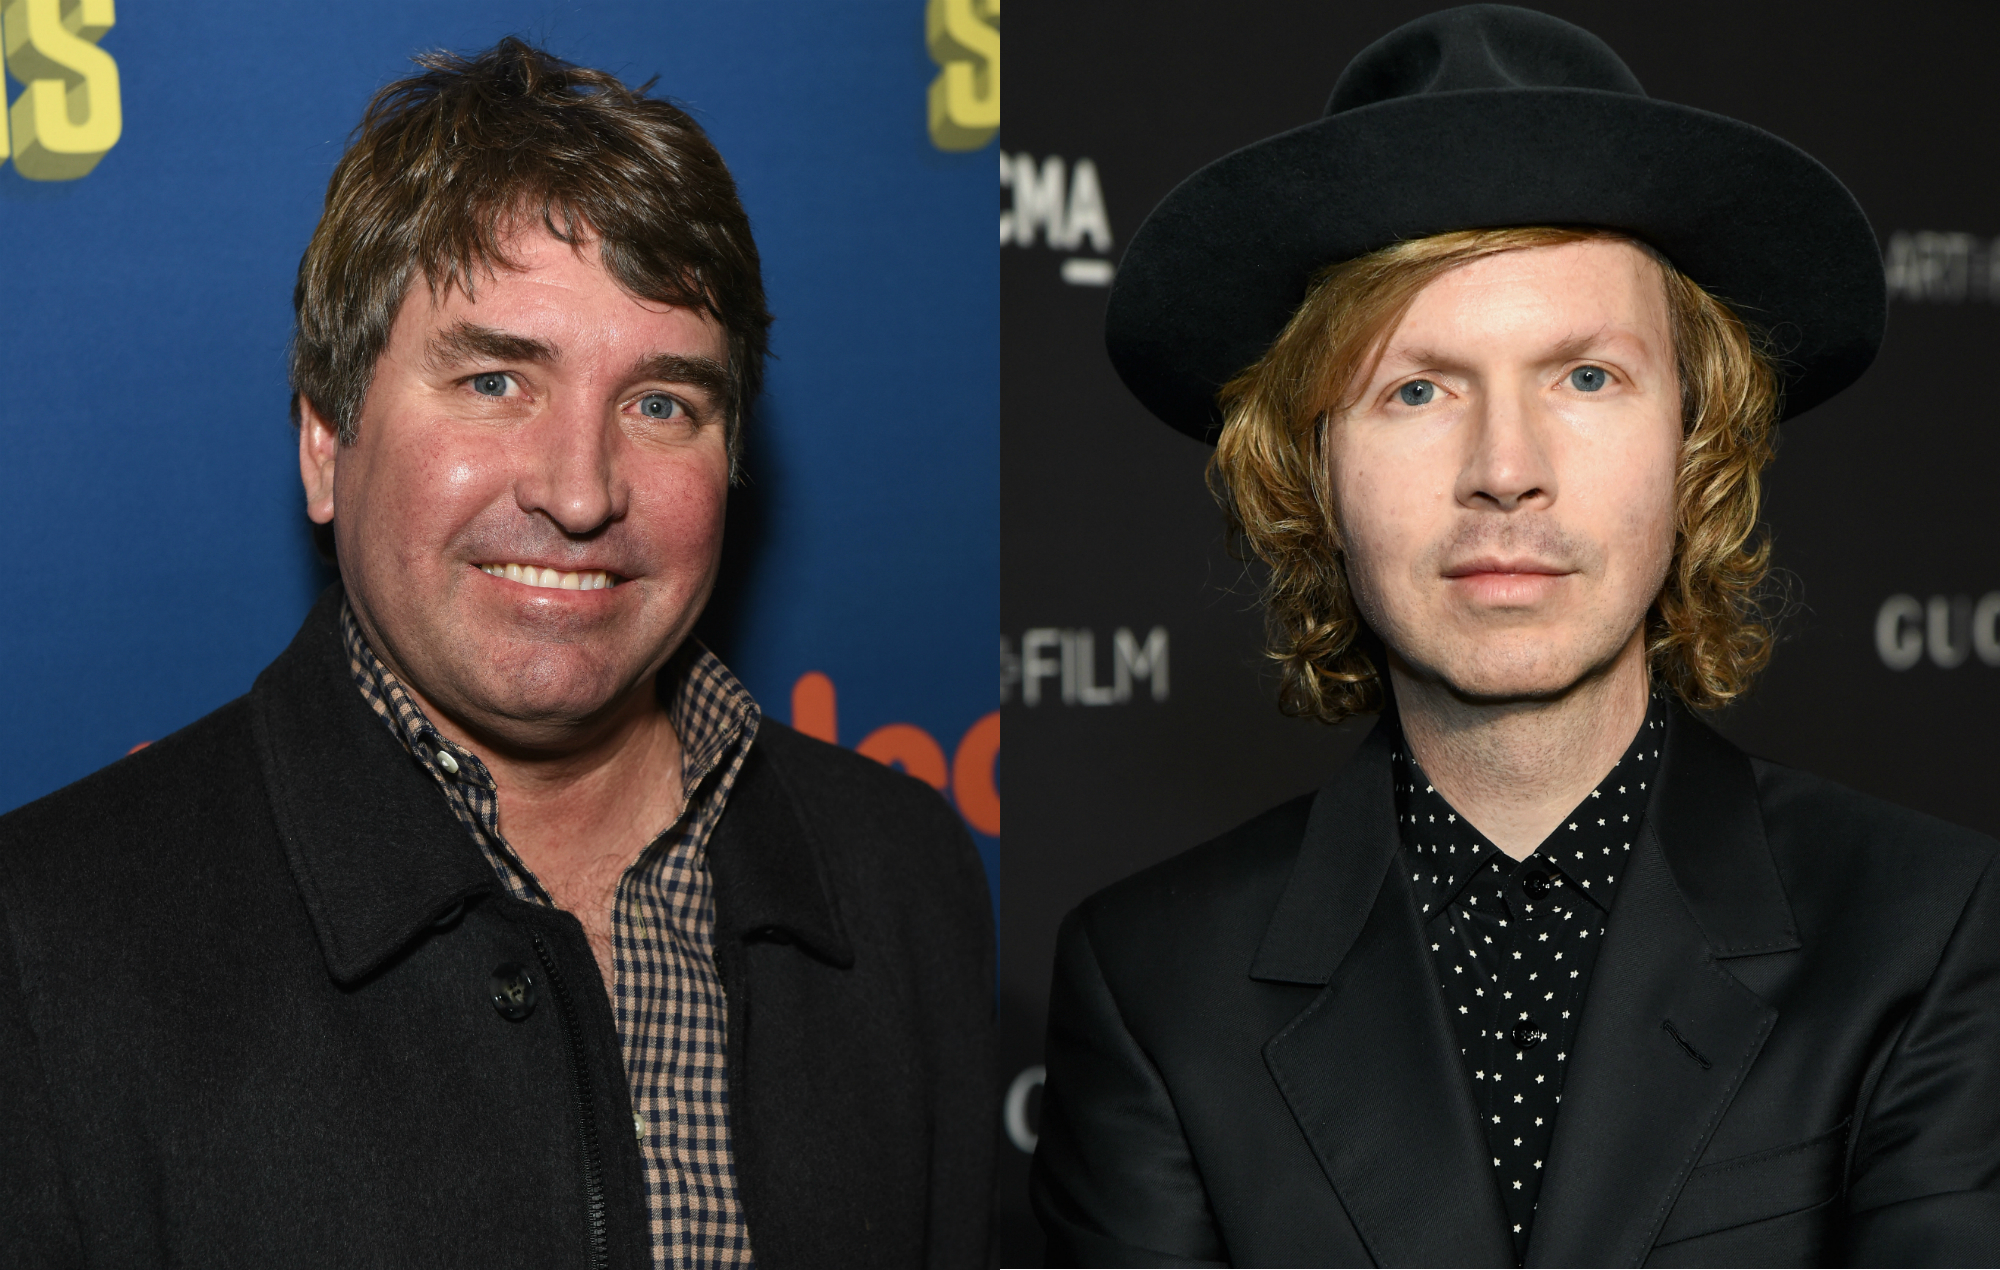 NME Festival blog: Beck pays tribute to 'SpongeBob' creator Stephen Hillenburg